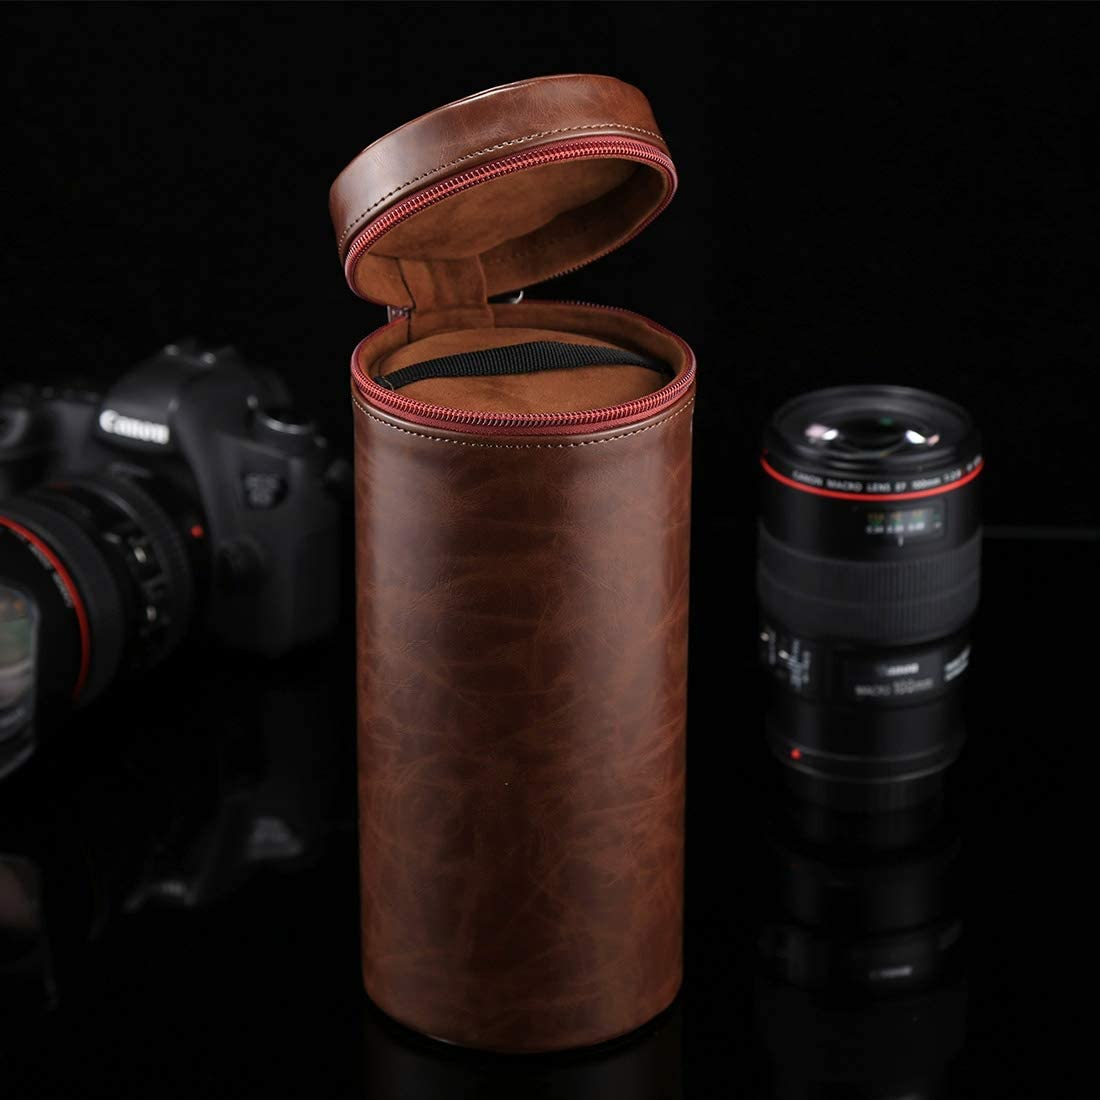 Size: 24.510.510.5cm Black WEIHONG Color : Coffee WEIHONG Bag Extra Large Lens Case Zippered PU Leather Pouch Box for DSLR Camera Lens